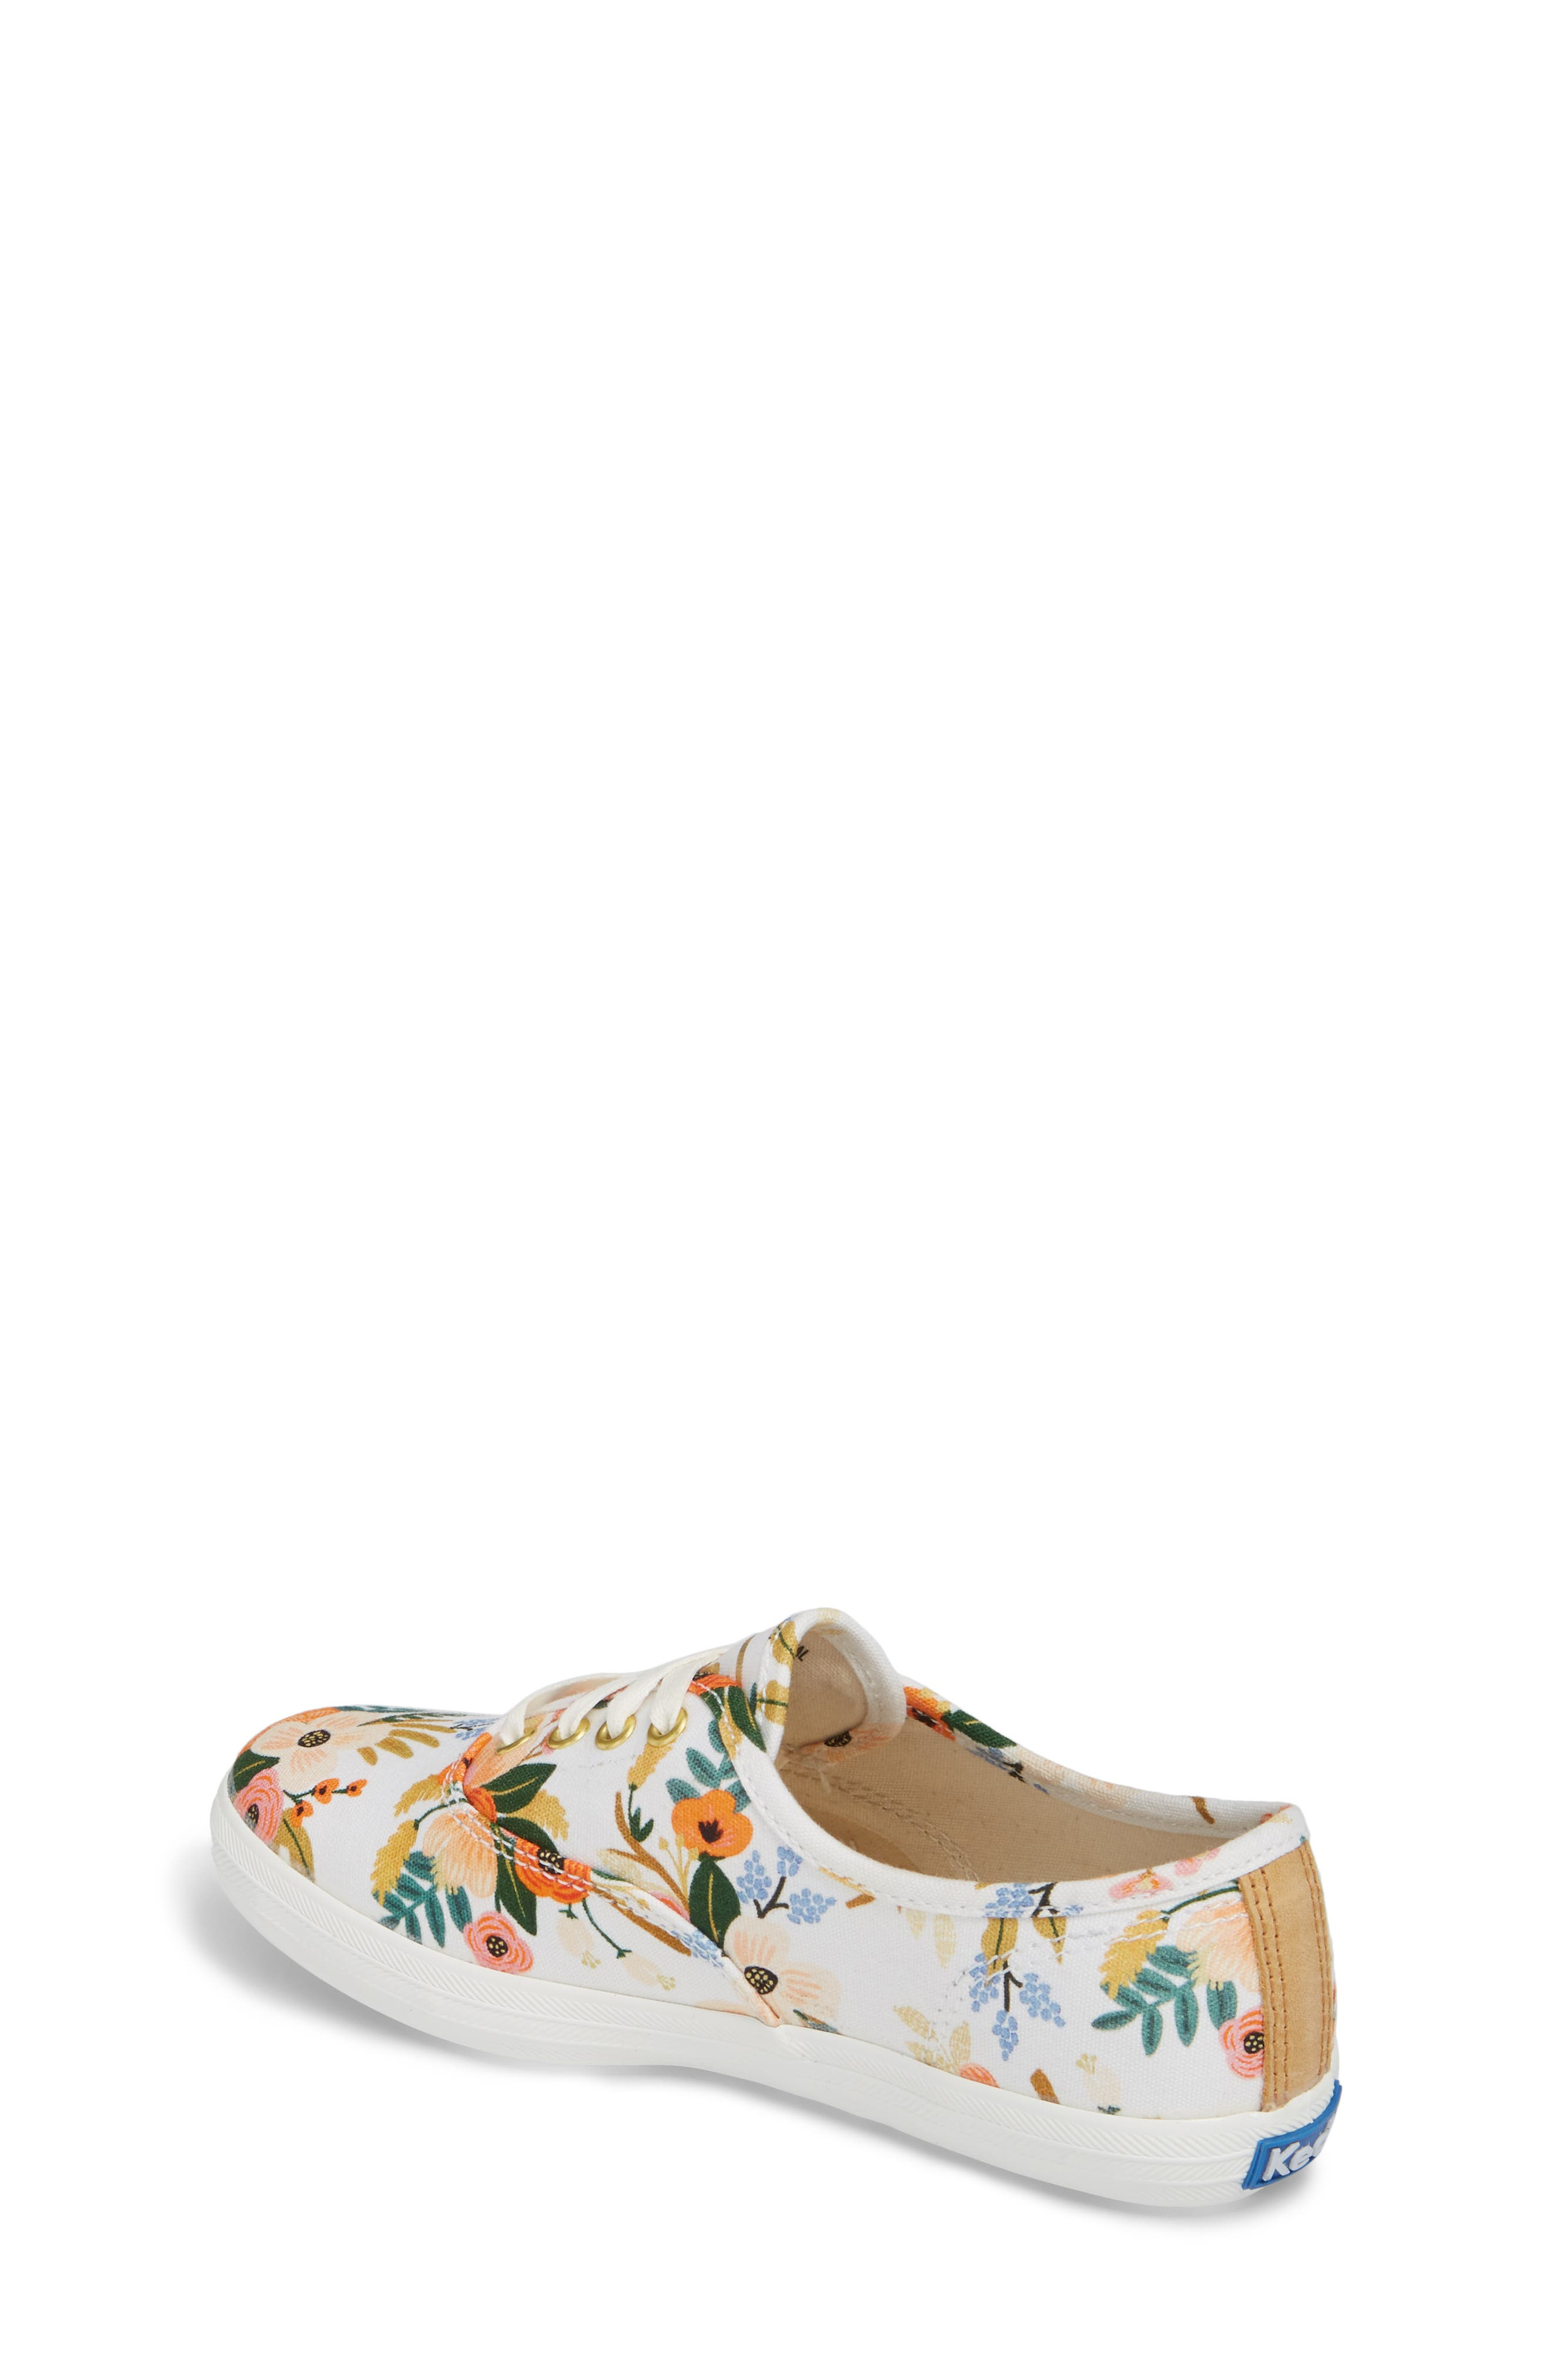 x Rifle Paper Co. Floral Print Champion Sneaker,                             Alternate thumbnail 2, color,                             Lively White